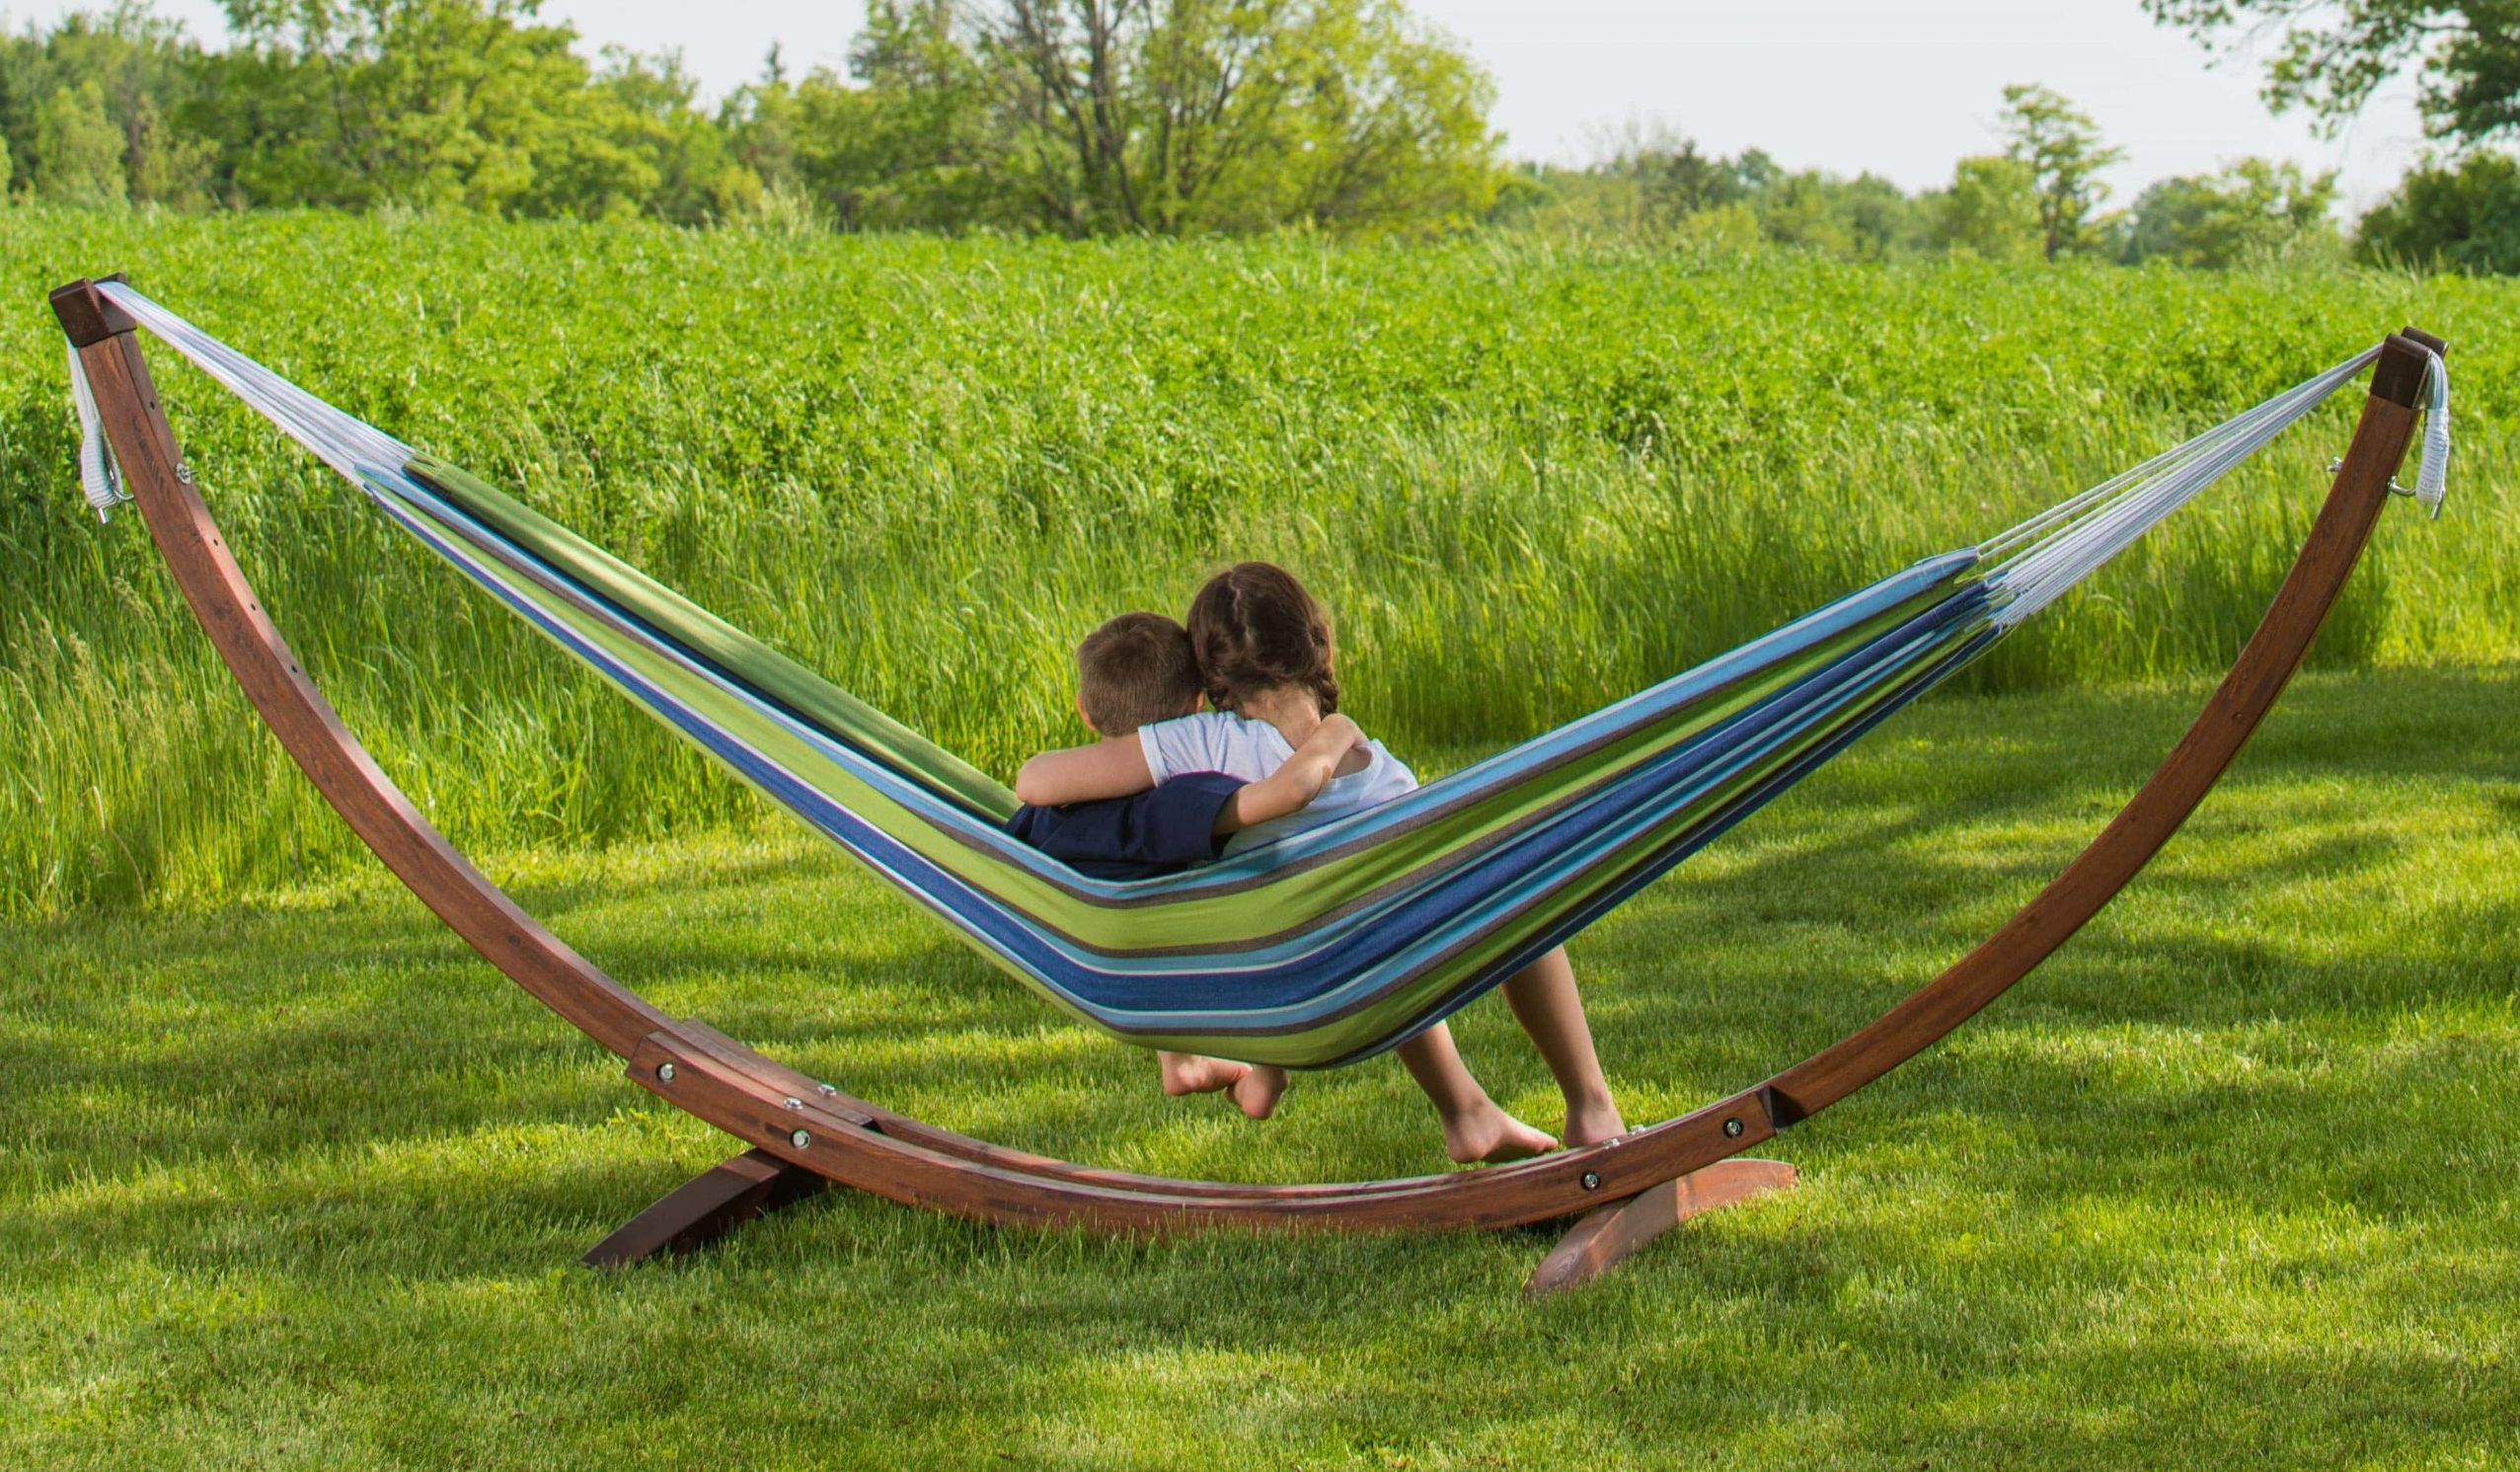 Double-Cotton-Hammock-with-Solid-Pine-Arc-Hammock-Stand-Oasis featured image for Hammock Stands page